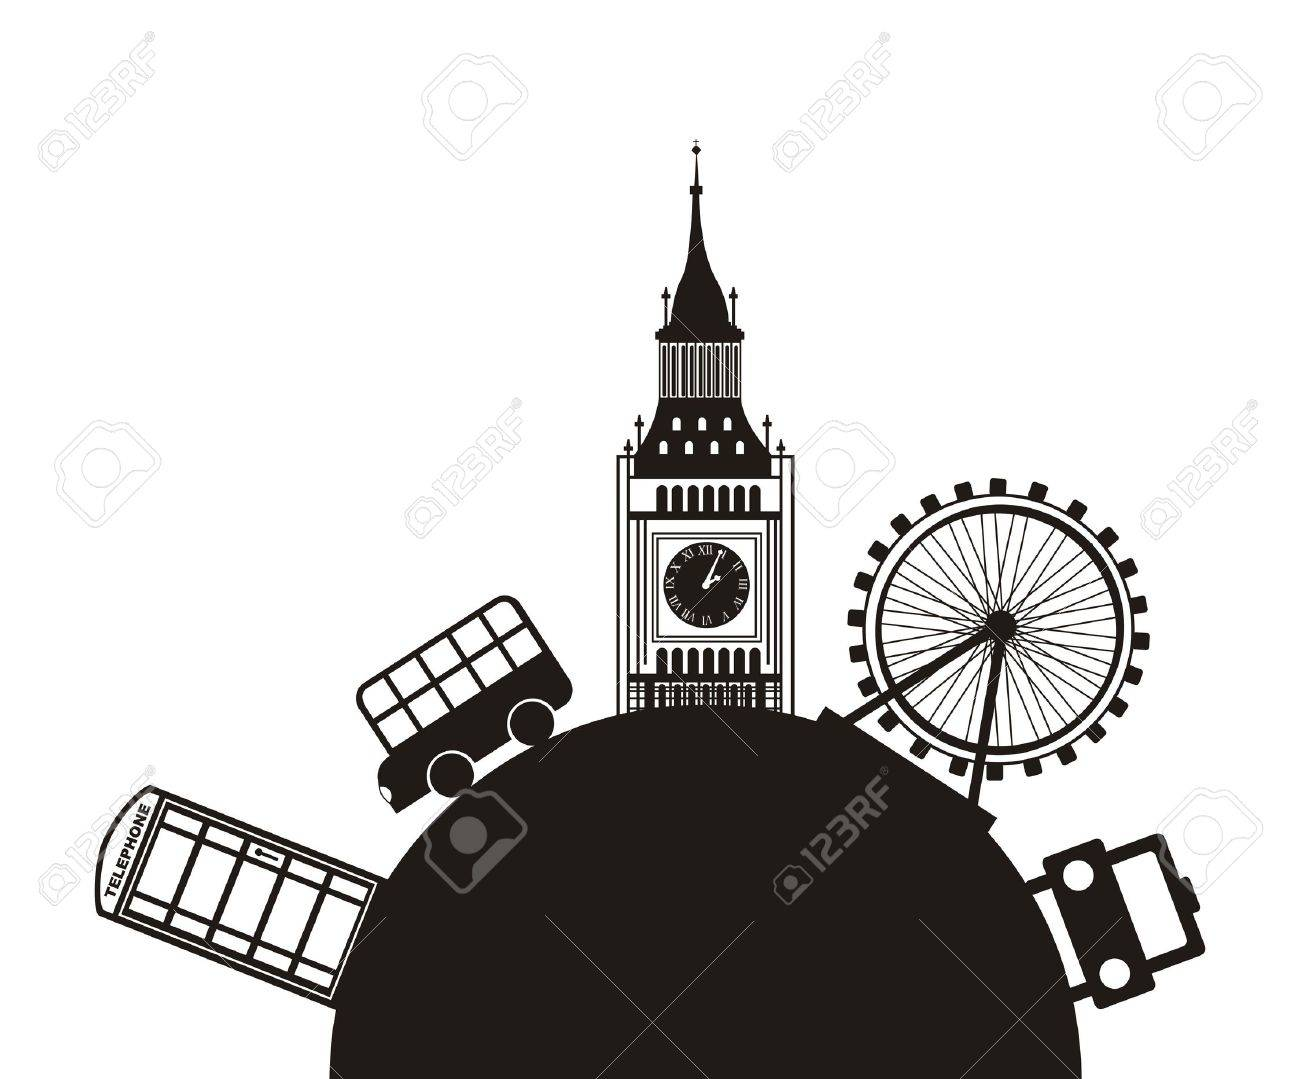 london monuments over white background. vector illutration Stock Vector - 17784425